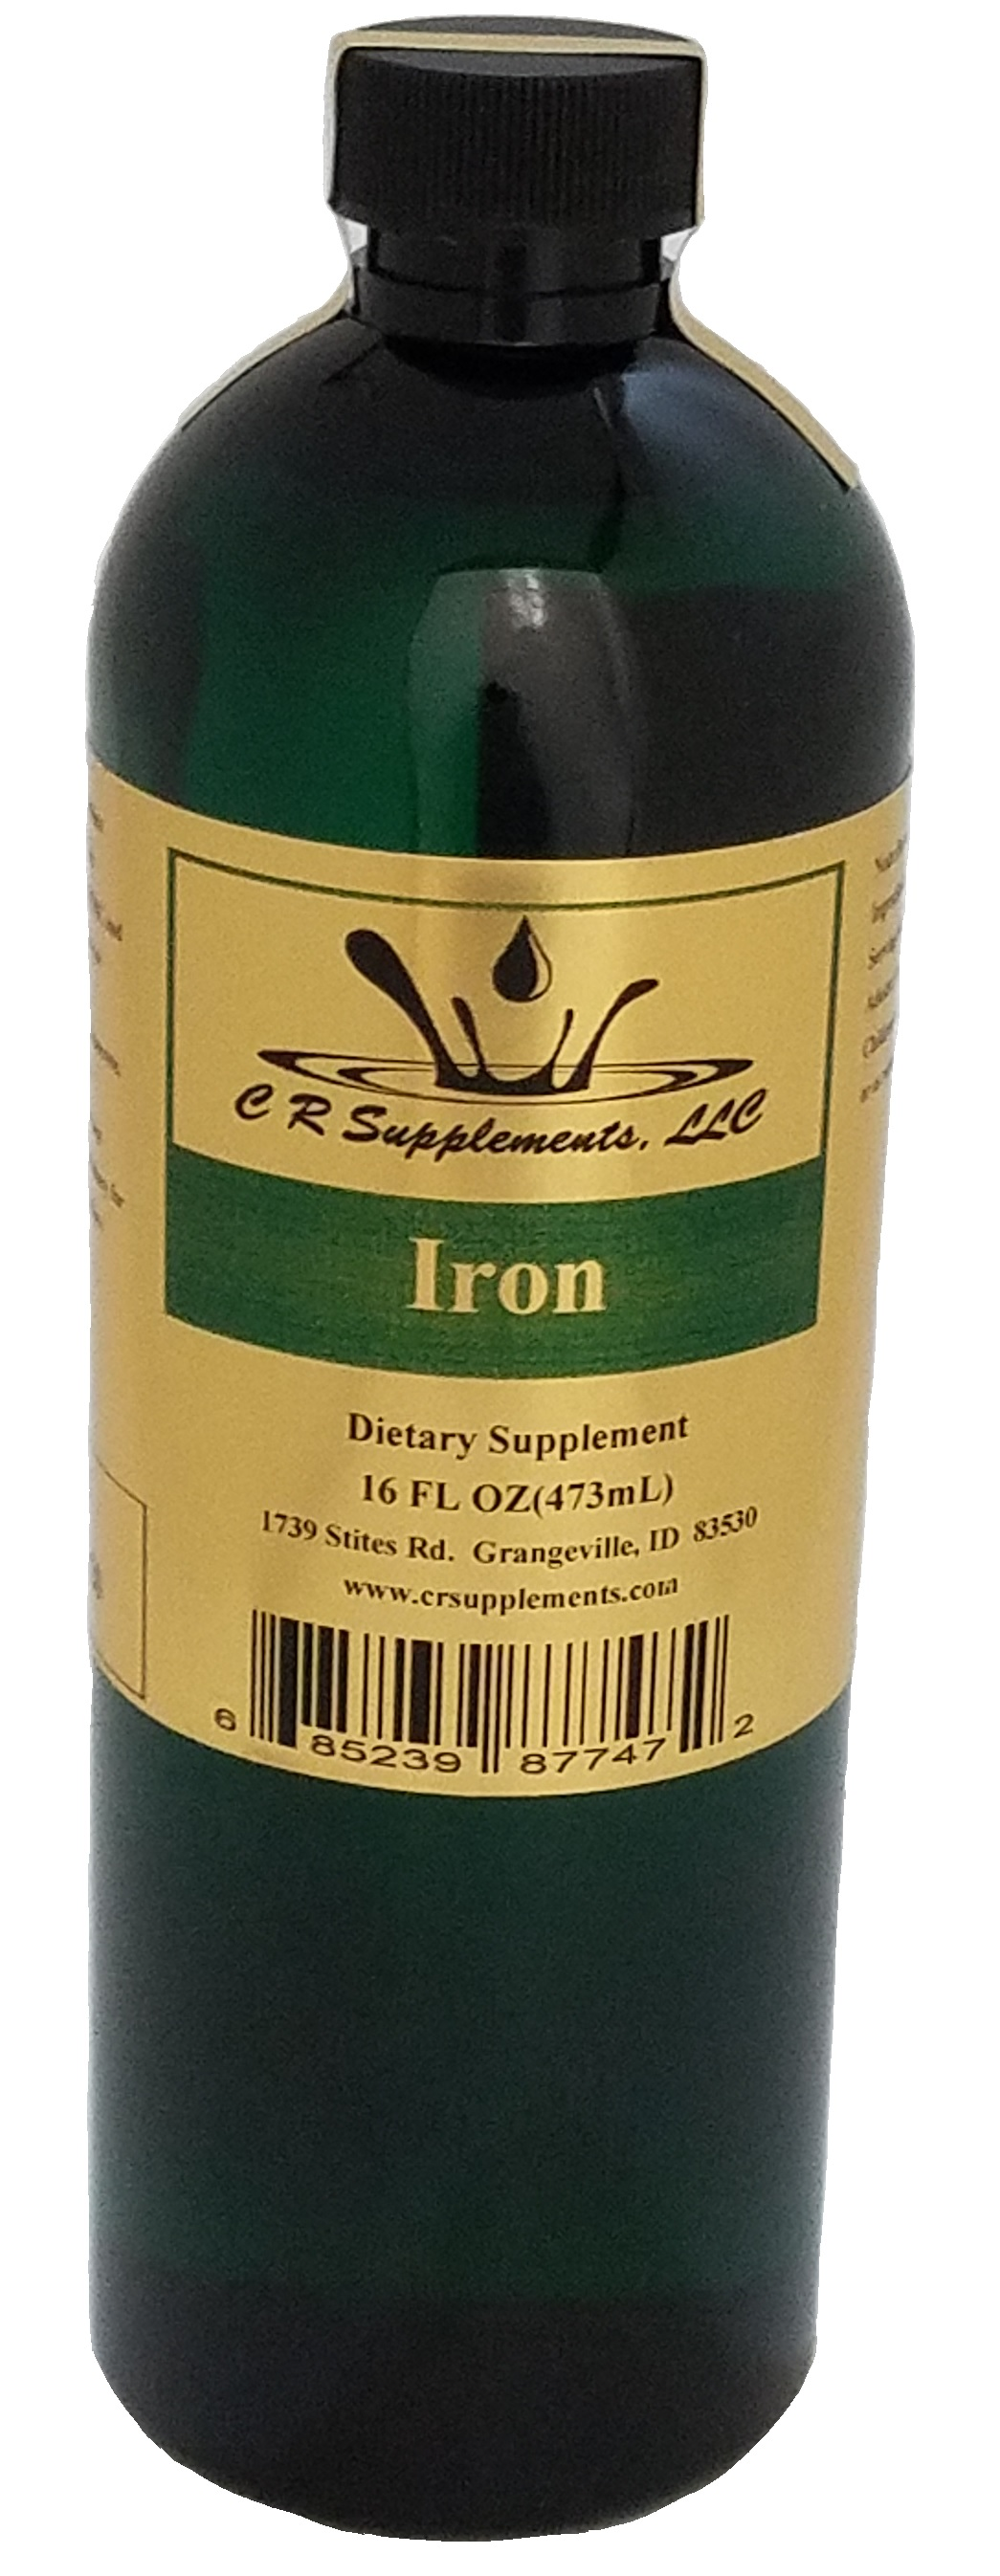 Iron Dietary Supplement